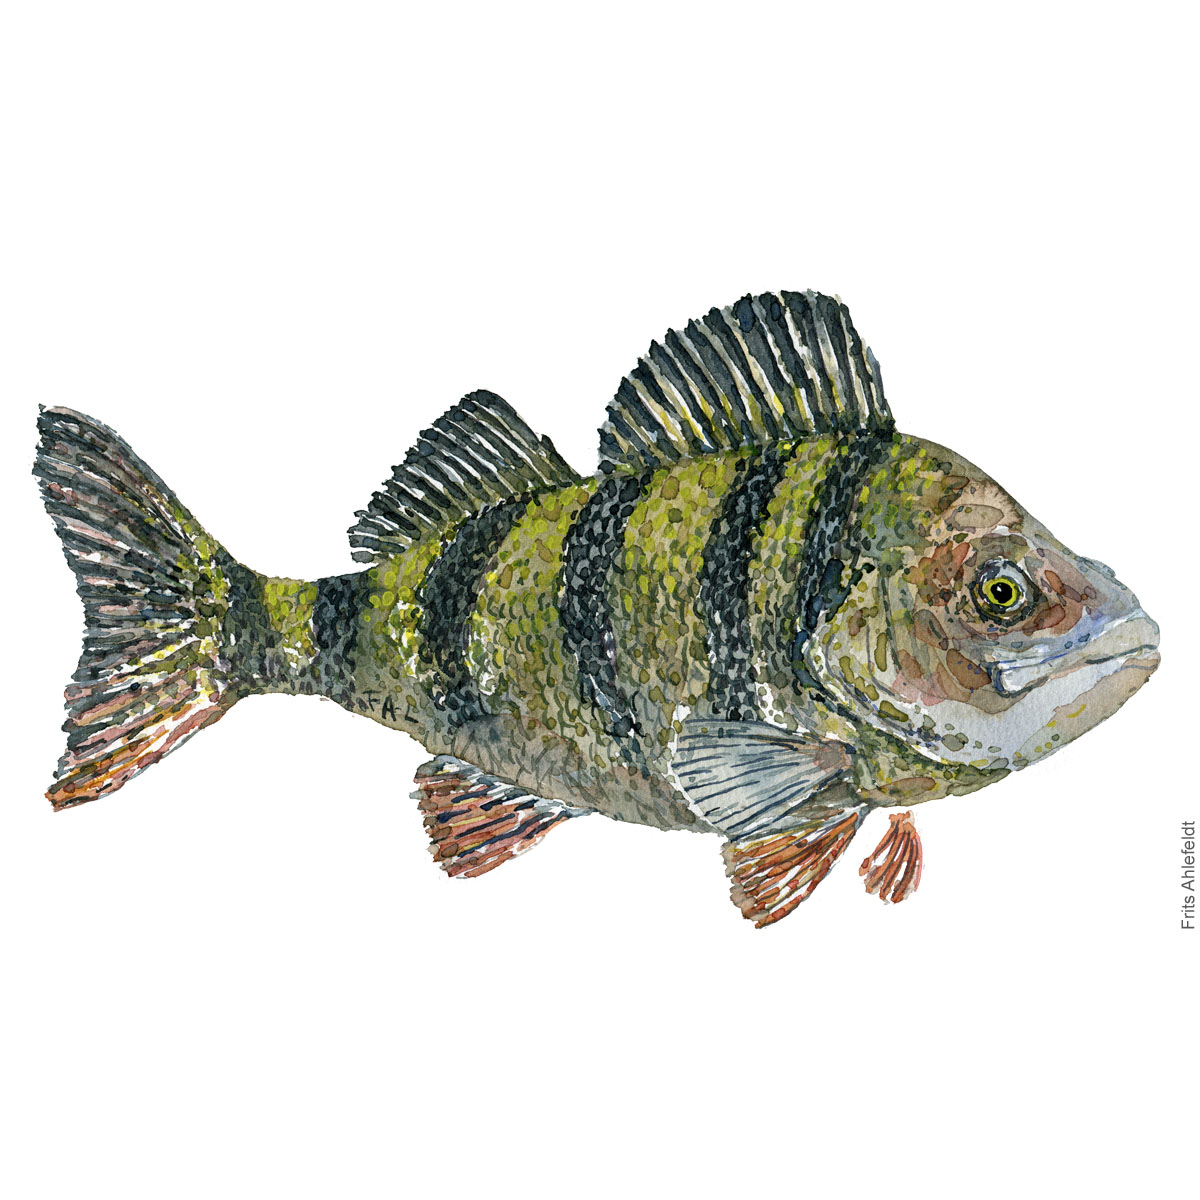 Aborre - Perch Fish painting in watercolor by Frits Ahlefeldt - Fiske akvarel